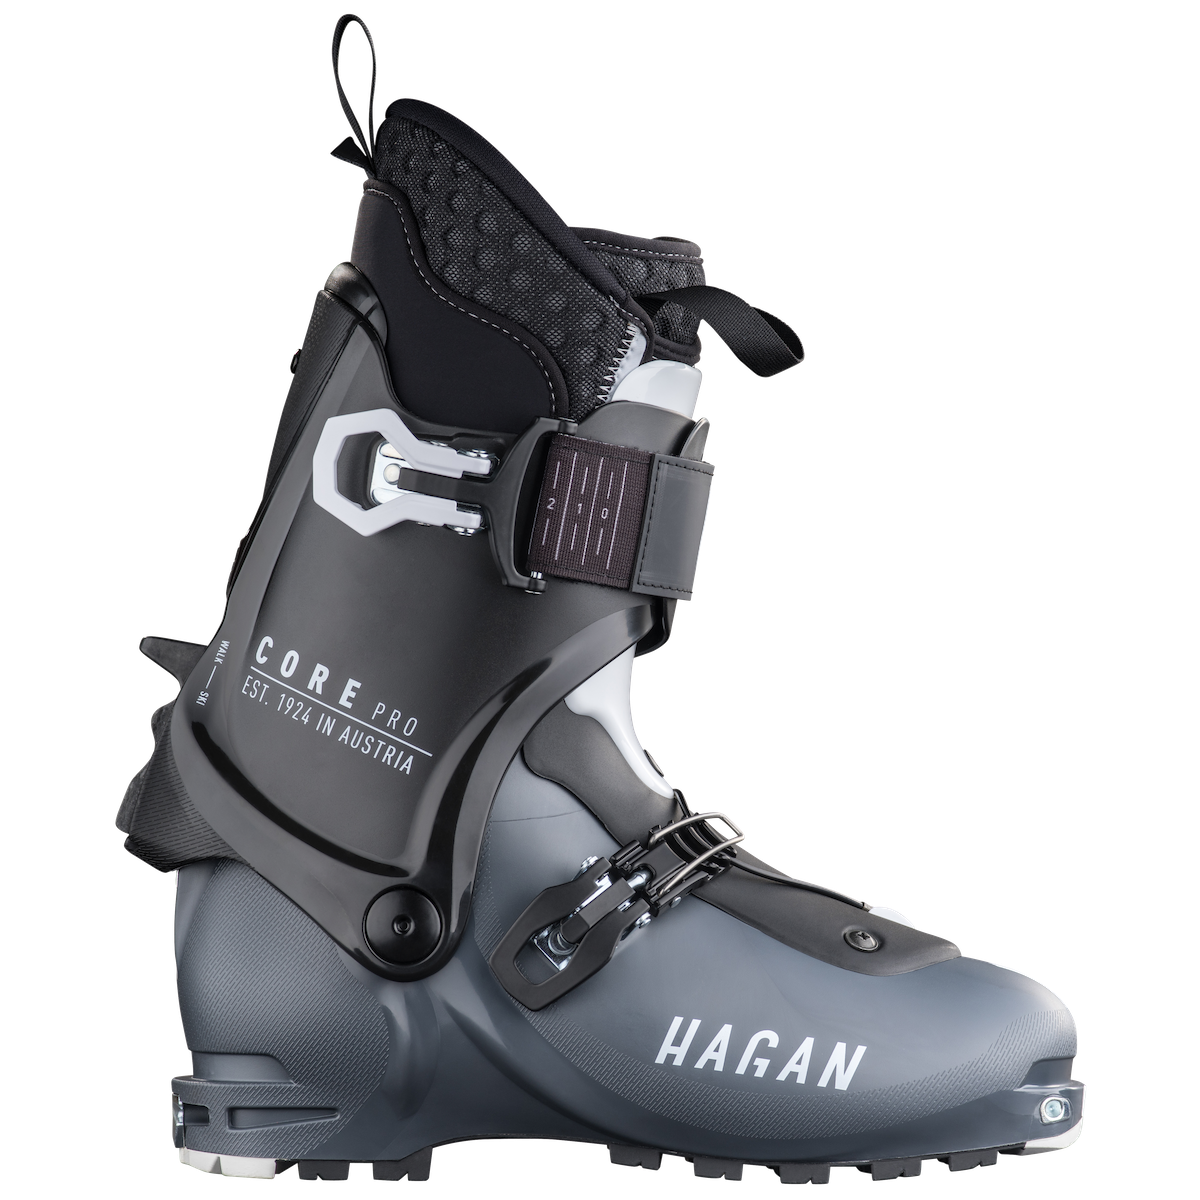 Hagan Core Pro alpine touring backcountry skiing boot for ski mountaineering